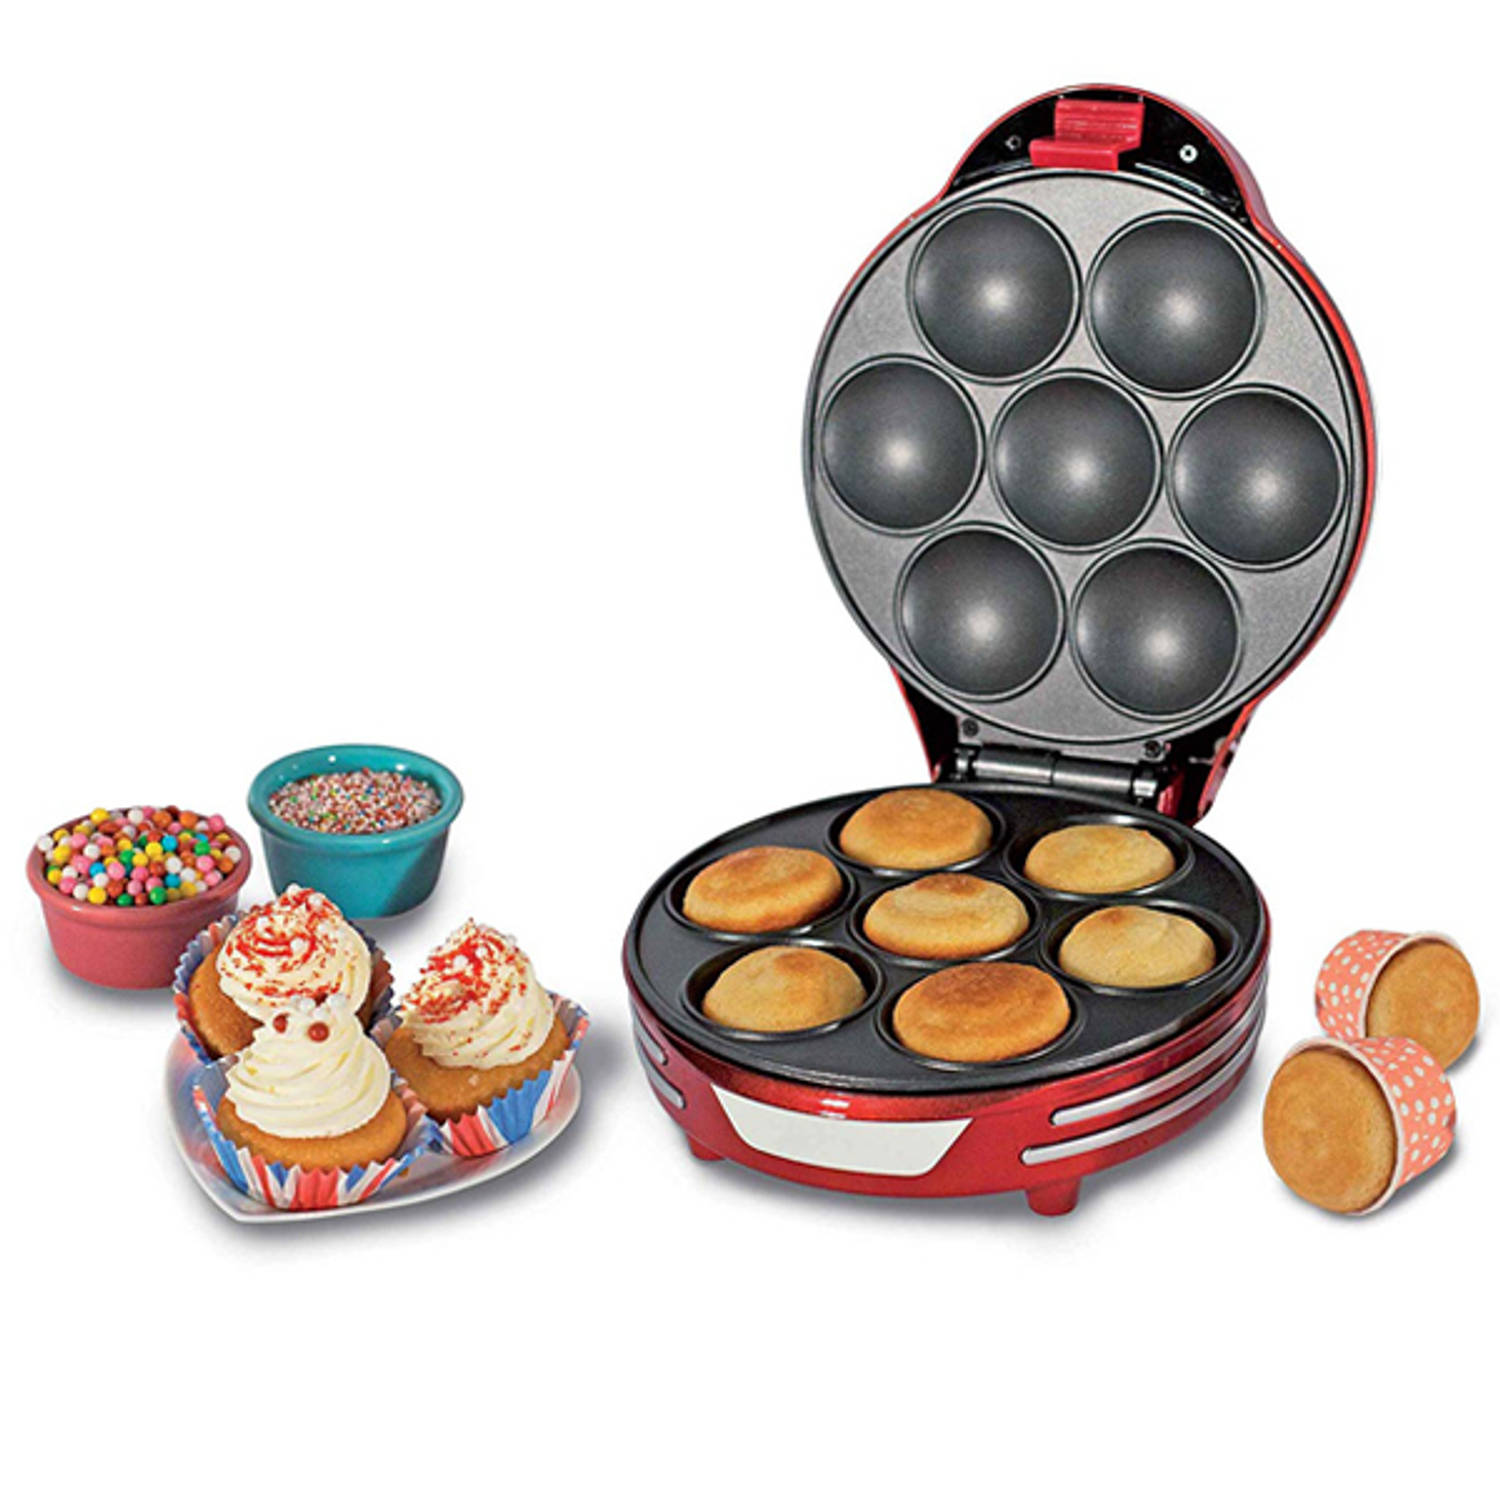 Ariete Retro Muffin & Cupcake Maker Party Time Rood